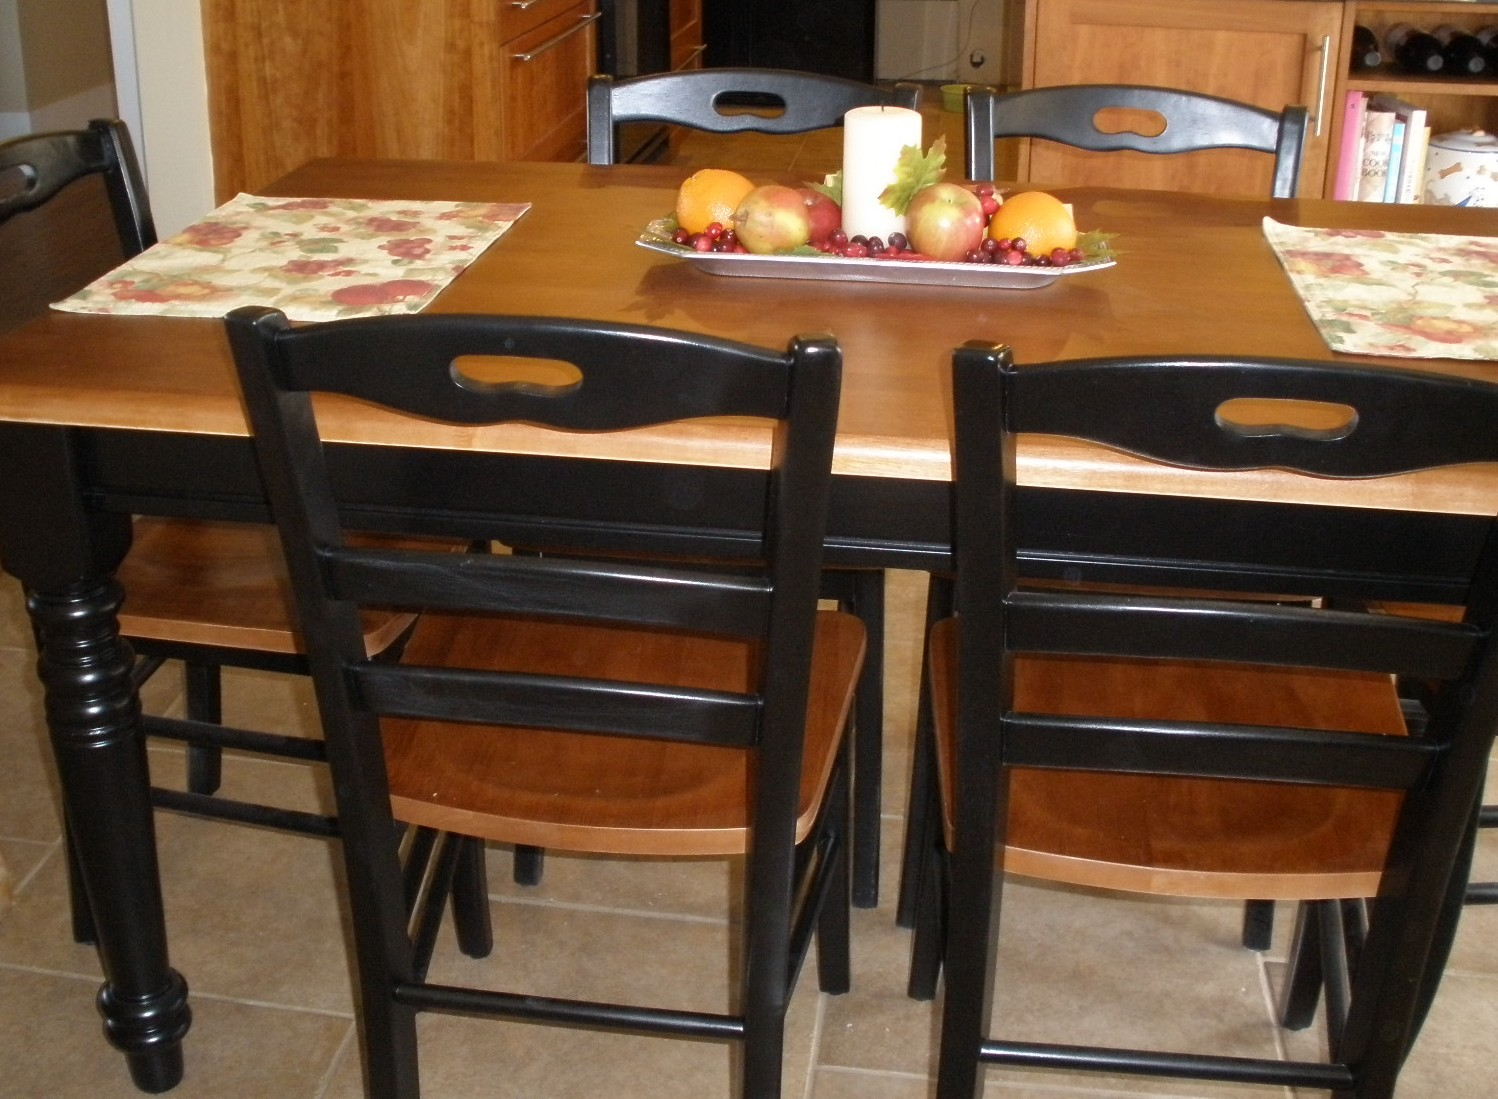 Painted Wood Kitchen Table and Chairs